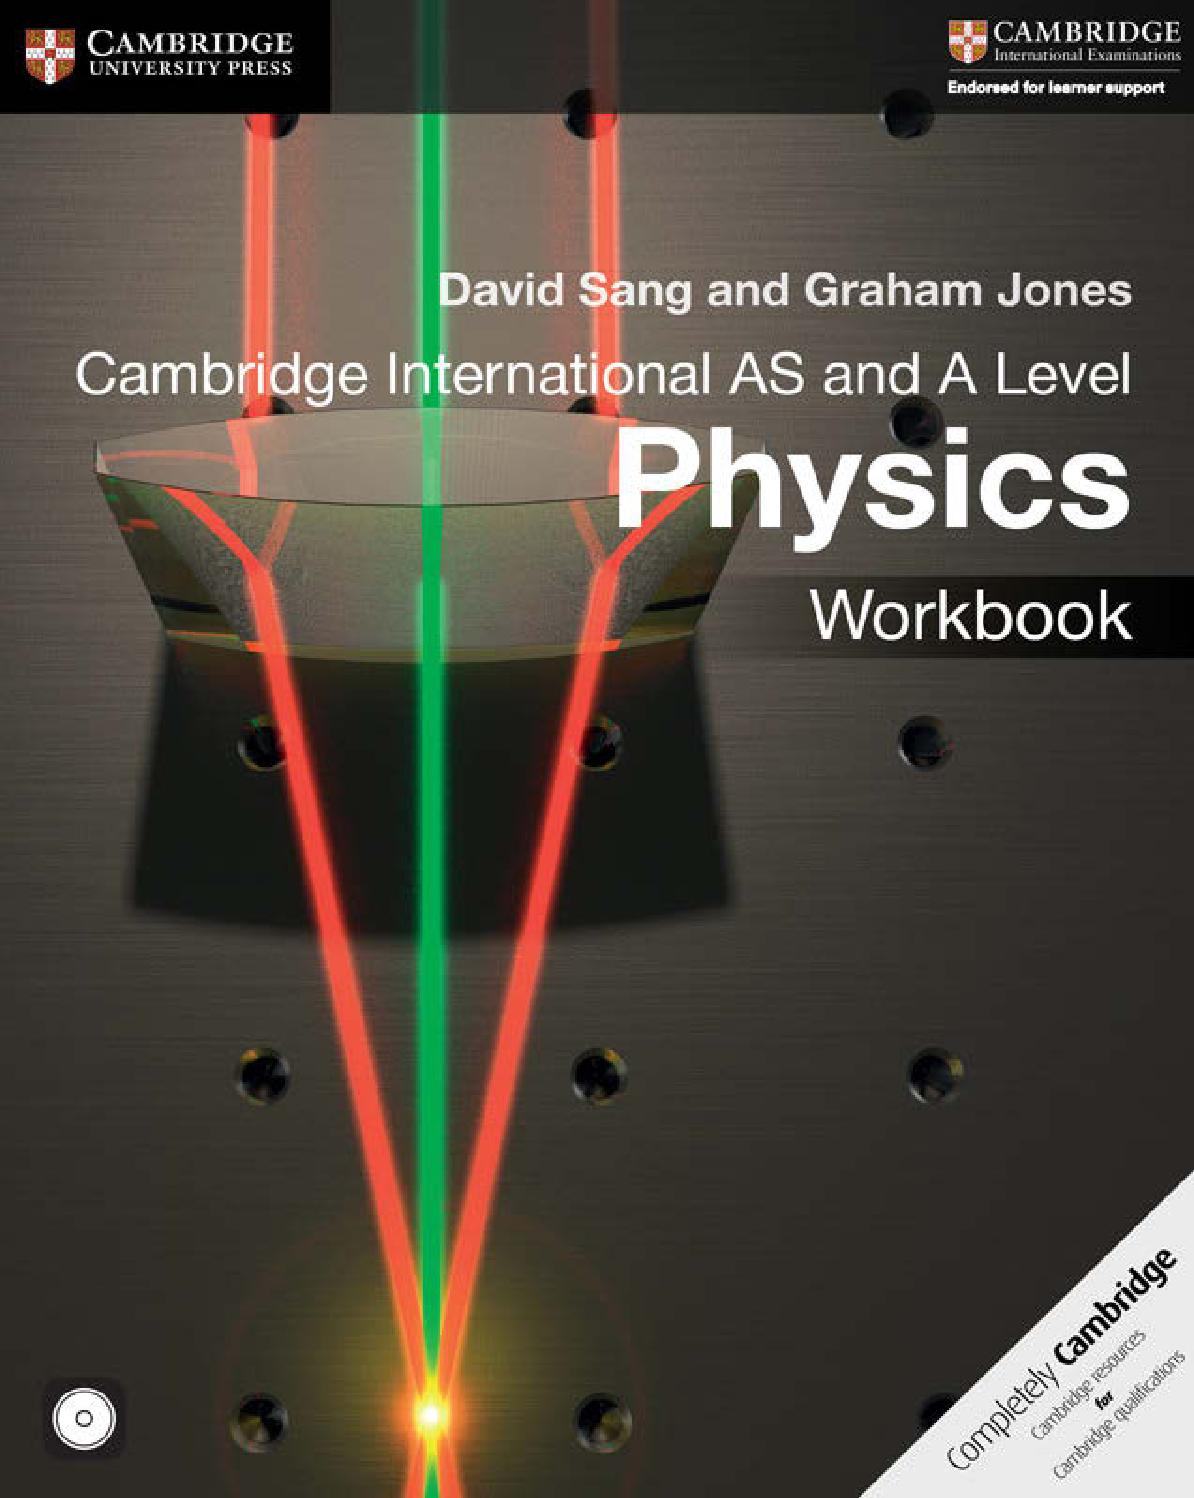 Preview Cambridge International As And A Level Physics Workbook By E Wiring Diagram Symbols Pointing Down University Press Education Issuu